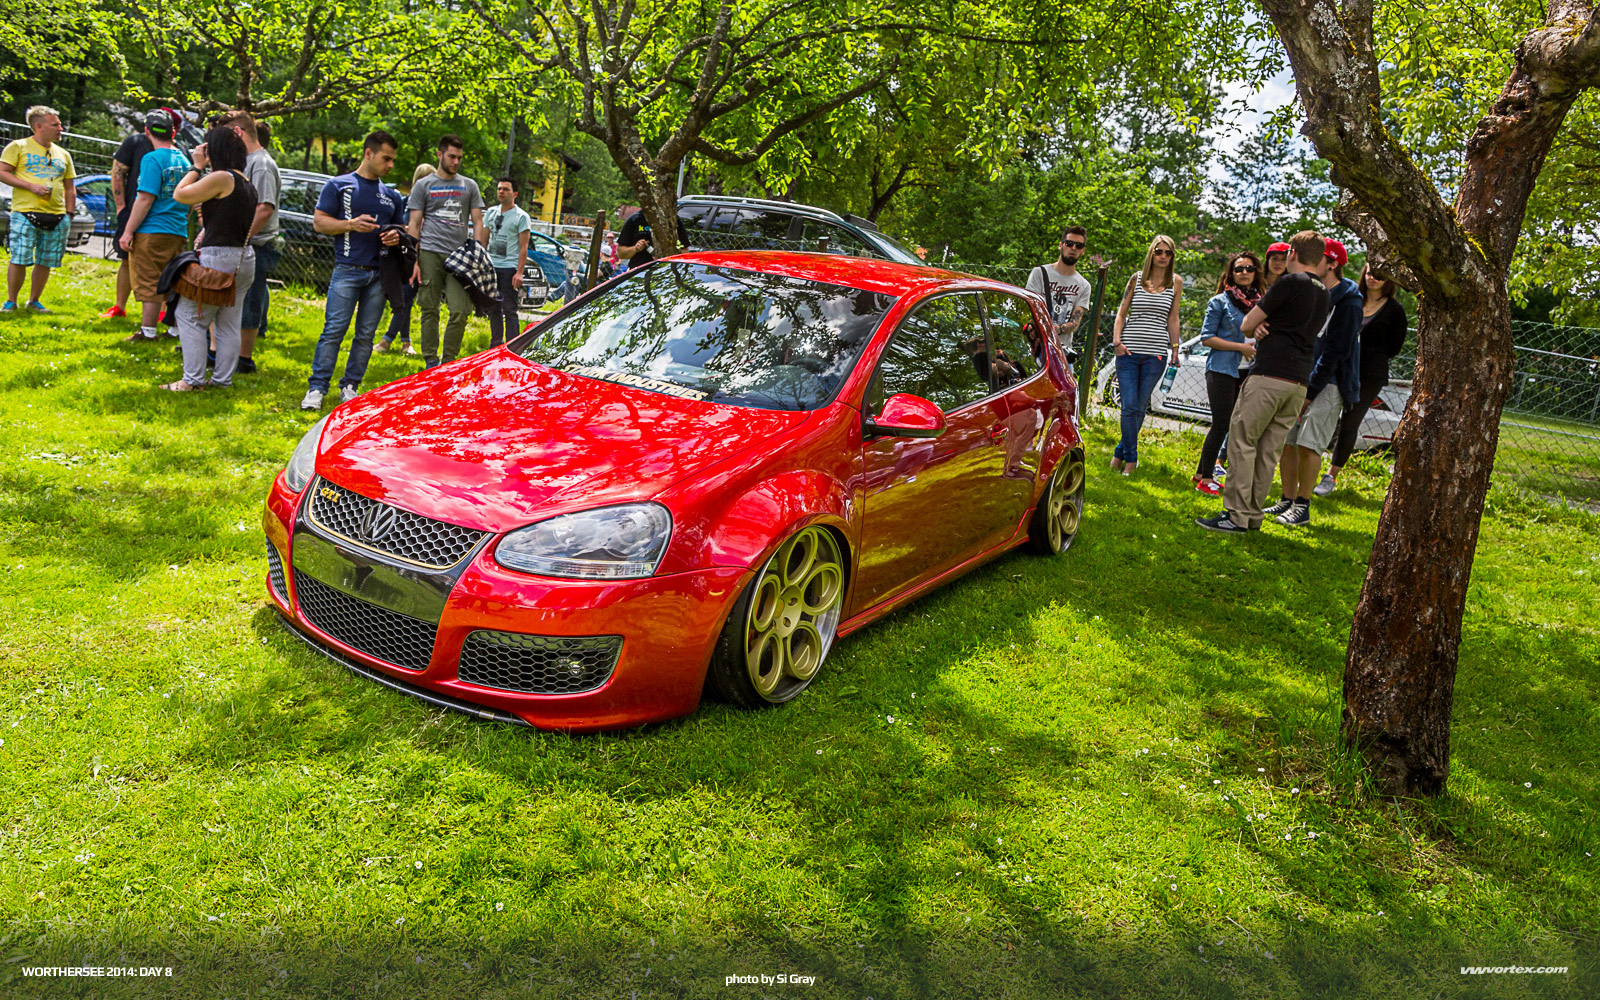 2014-Worthersee-Day-8-Si-Gray-1109